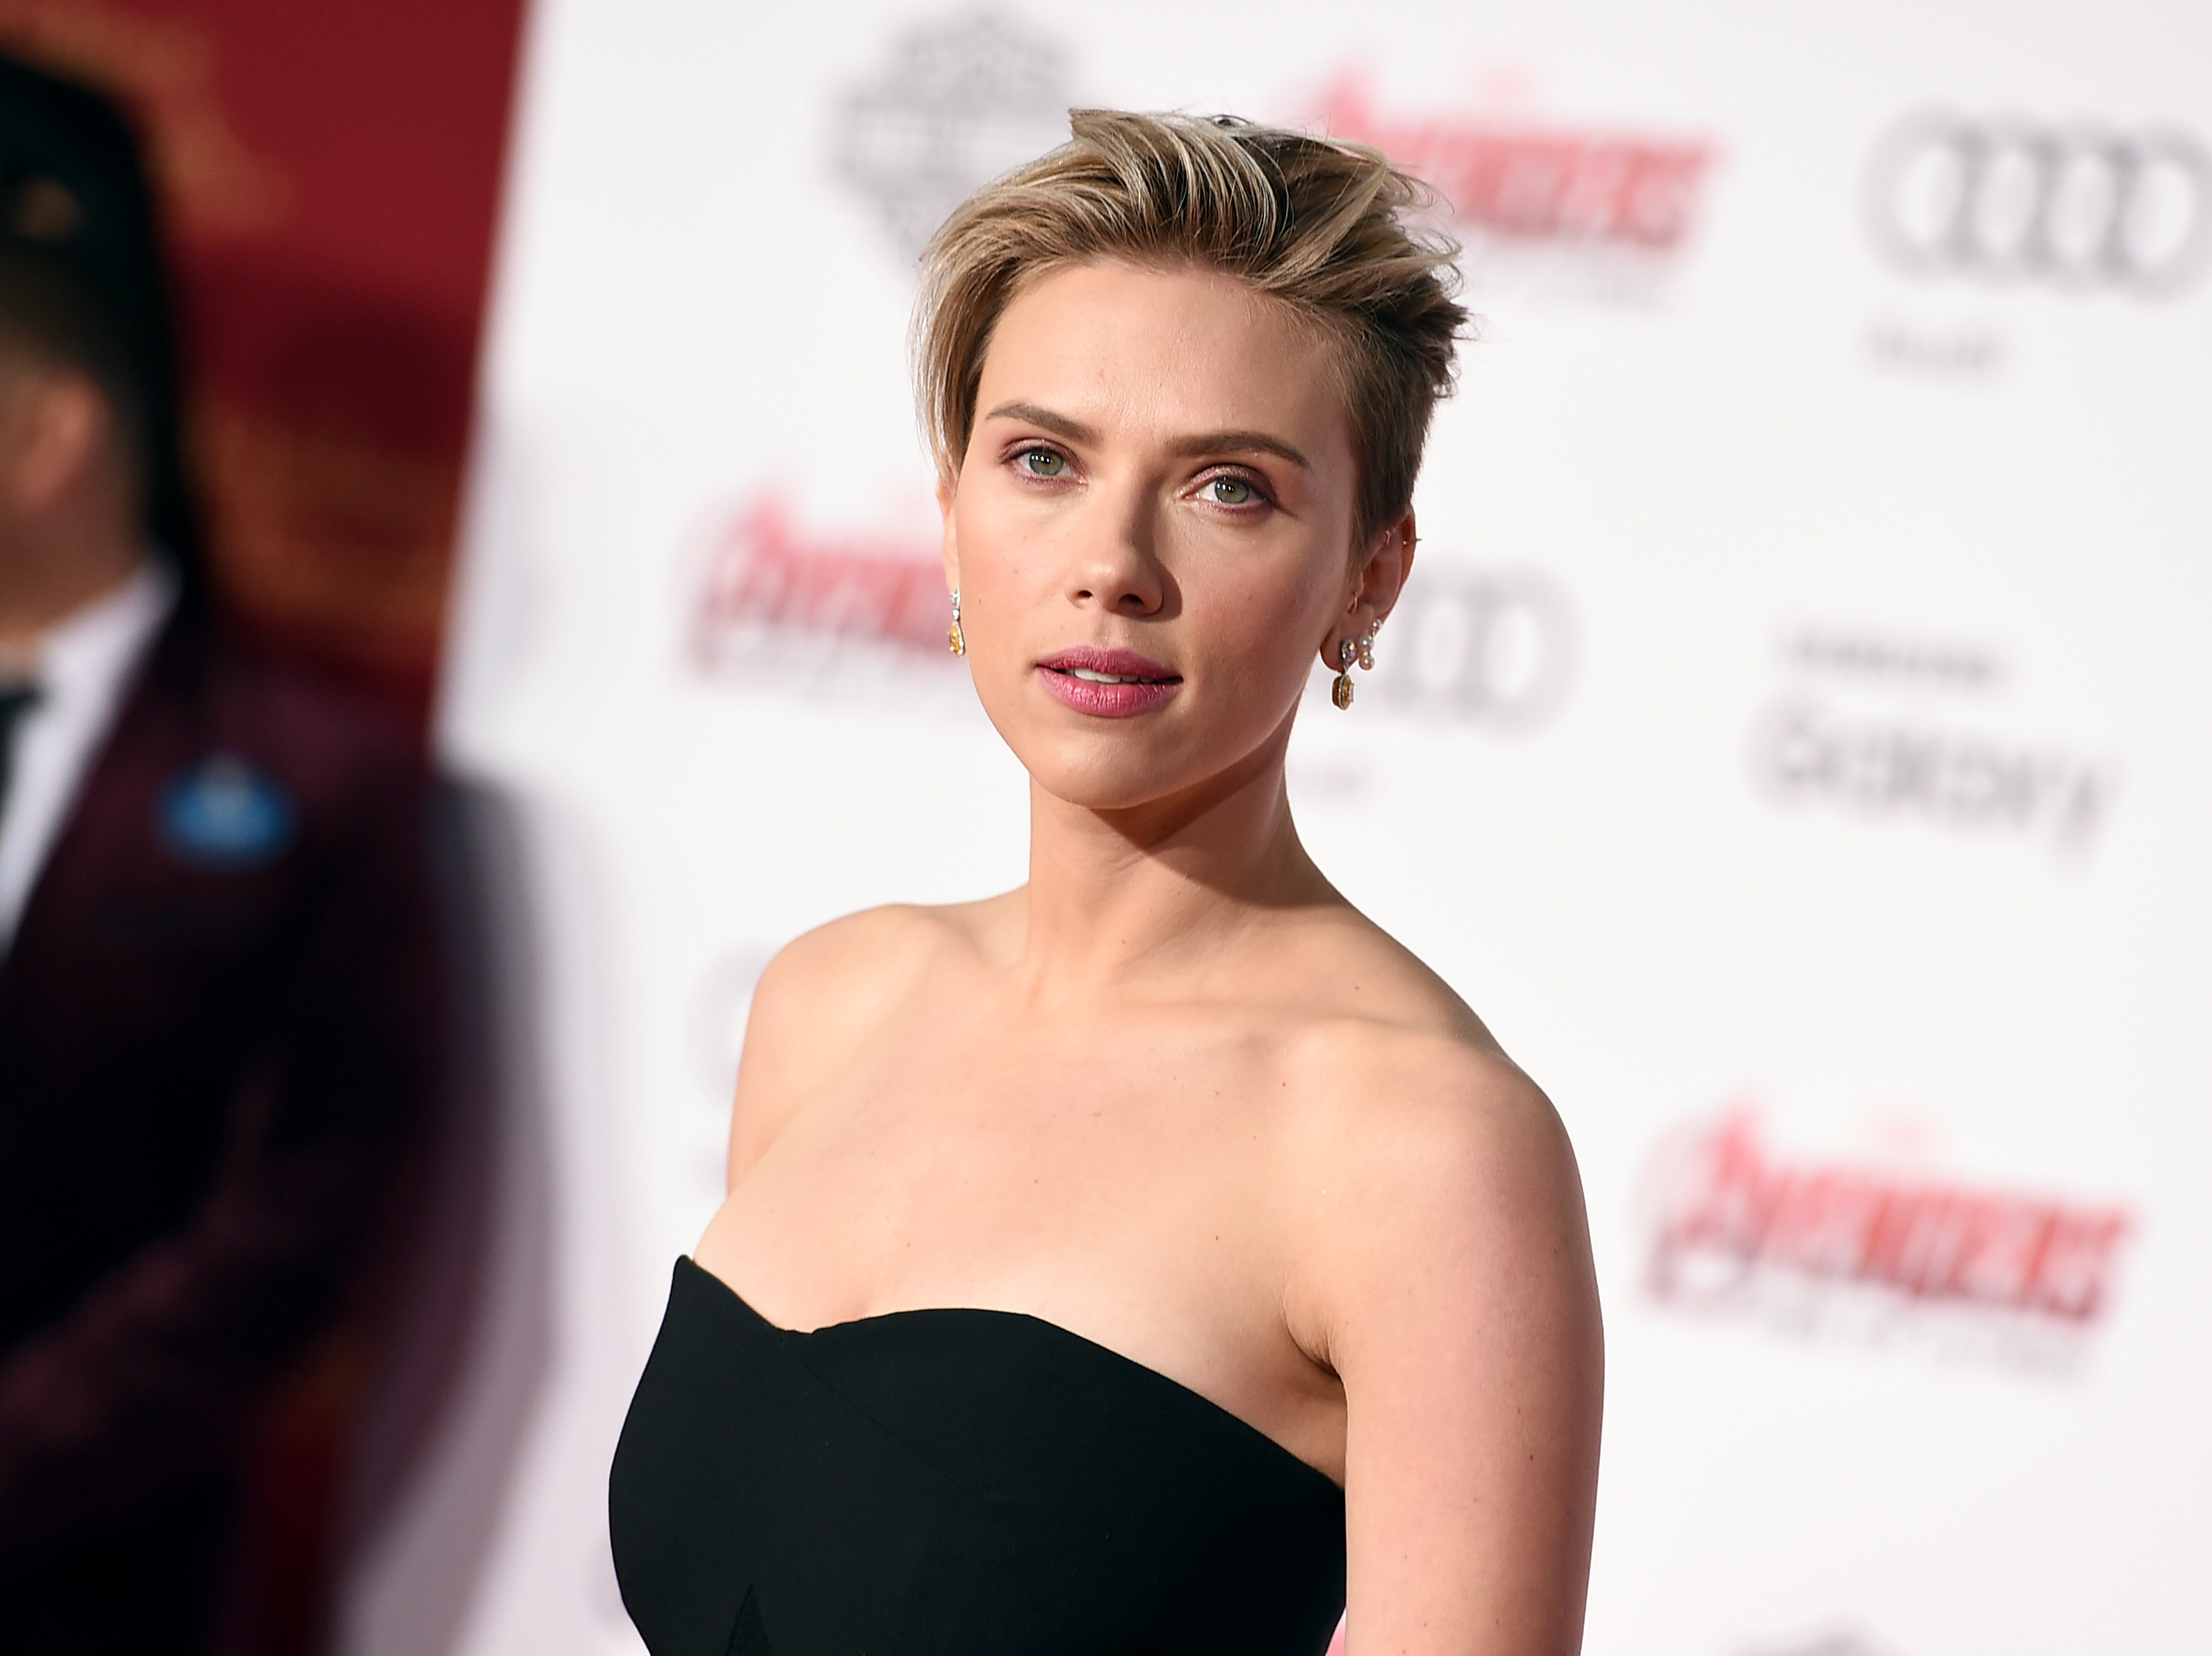 Scarlett Johansson arrives at the Los Angeles premiere of  Avengers: Age Of Ultron.  on  April 13, 2015.